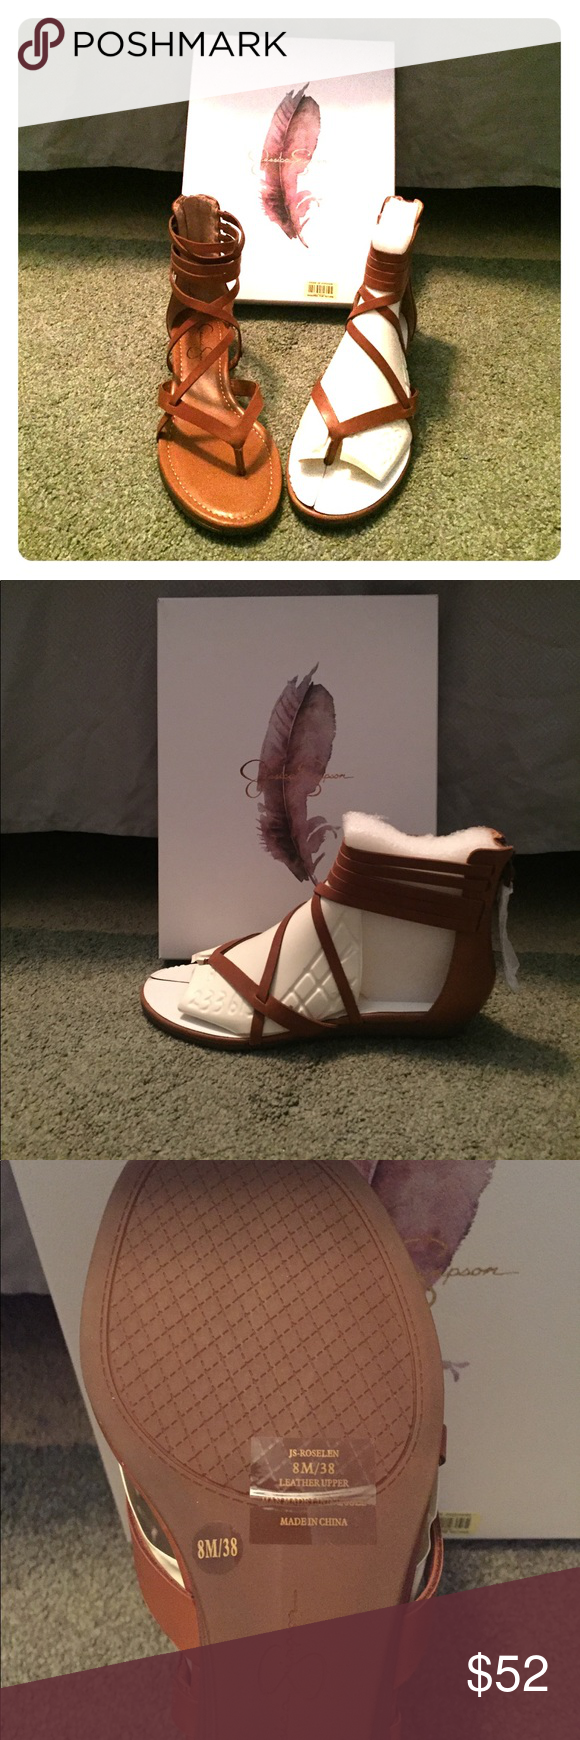 Jessica Simpson Roselen Wedge Sandal (Burnt Umber) Brand new, never worn, still in original packaging, Jessica Simpson Roselen Wedge Sandals (Burnt Umber). Summer sexy low wedge sandal 😎 Perfect for casual wear or even to dress up! Jessica Simpson Shoes